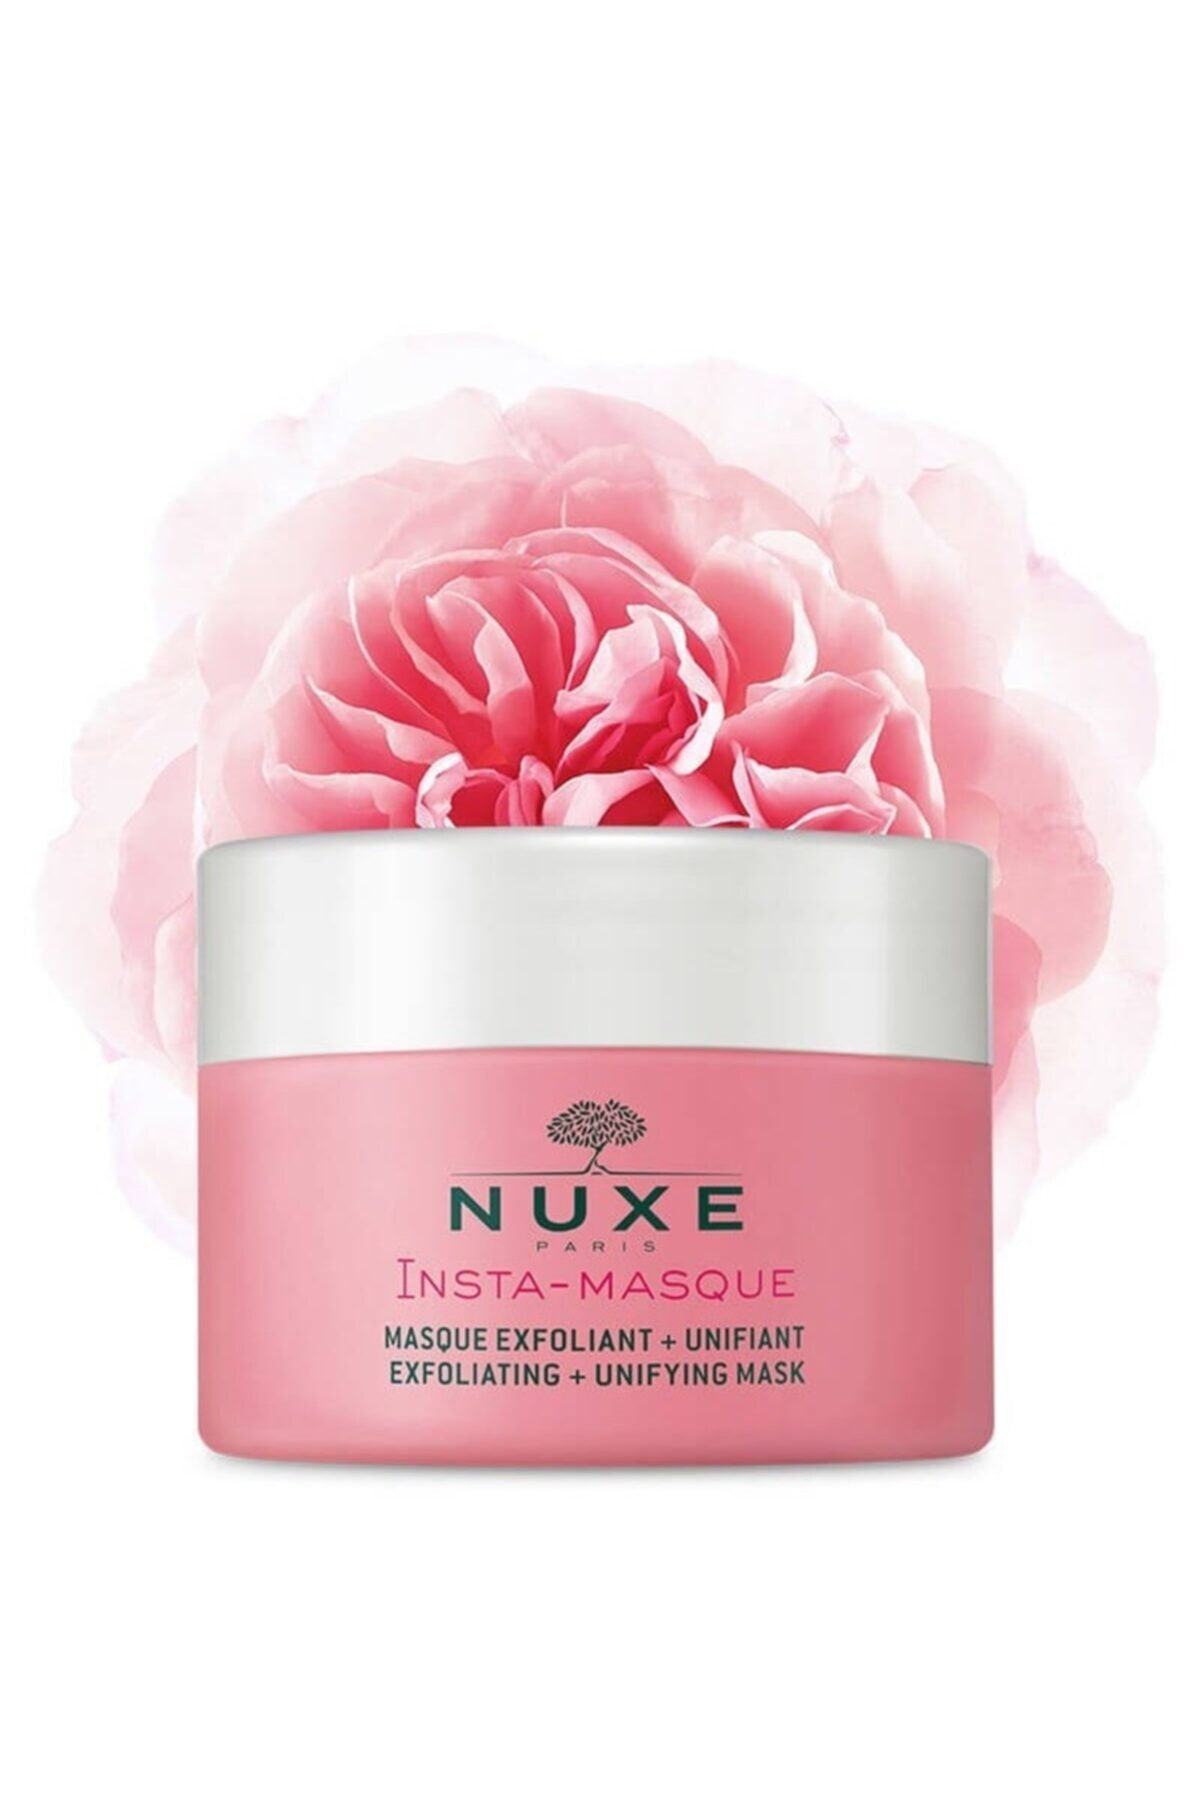 Nuxe Insta-masque Exfoliating + Unifying Mask 50ml 2